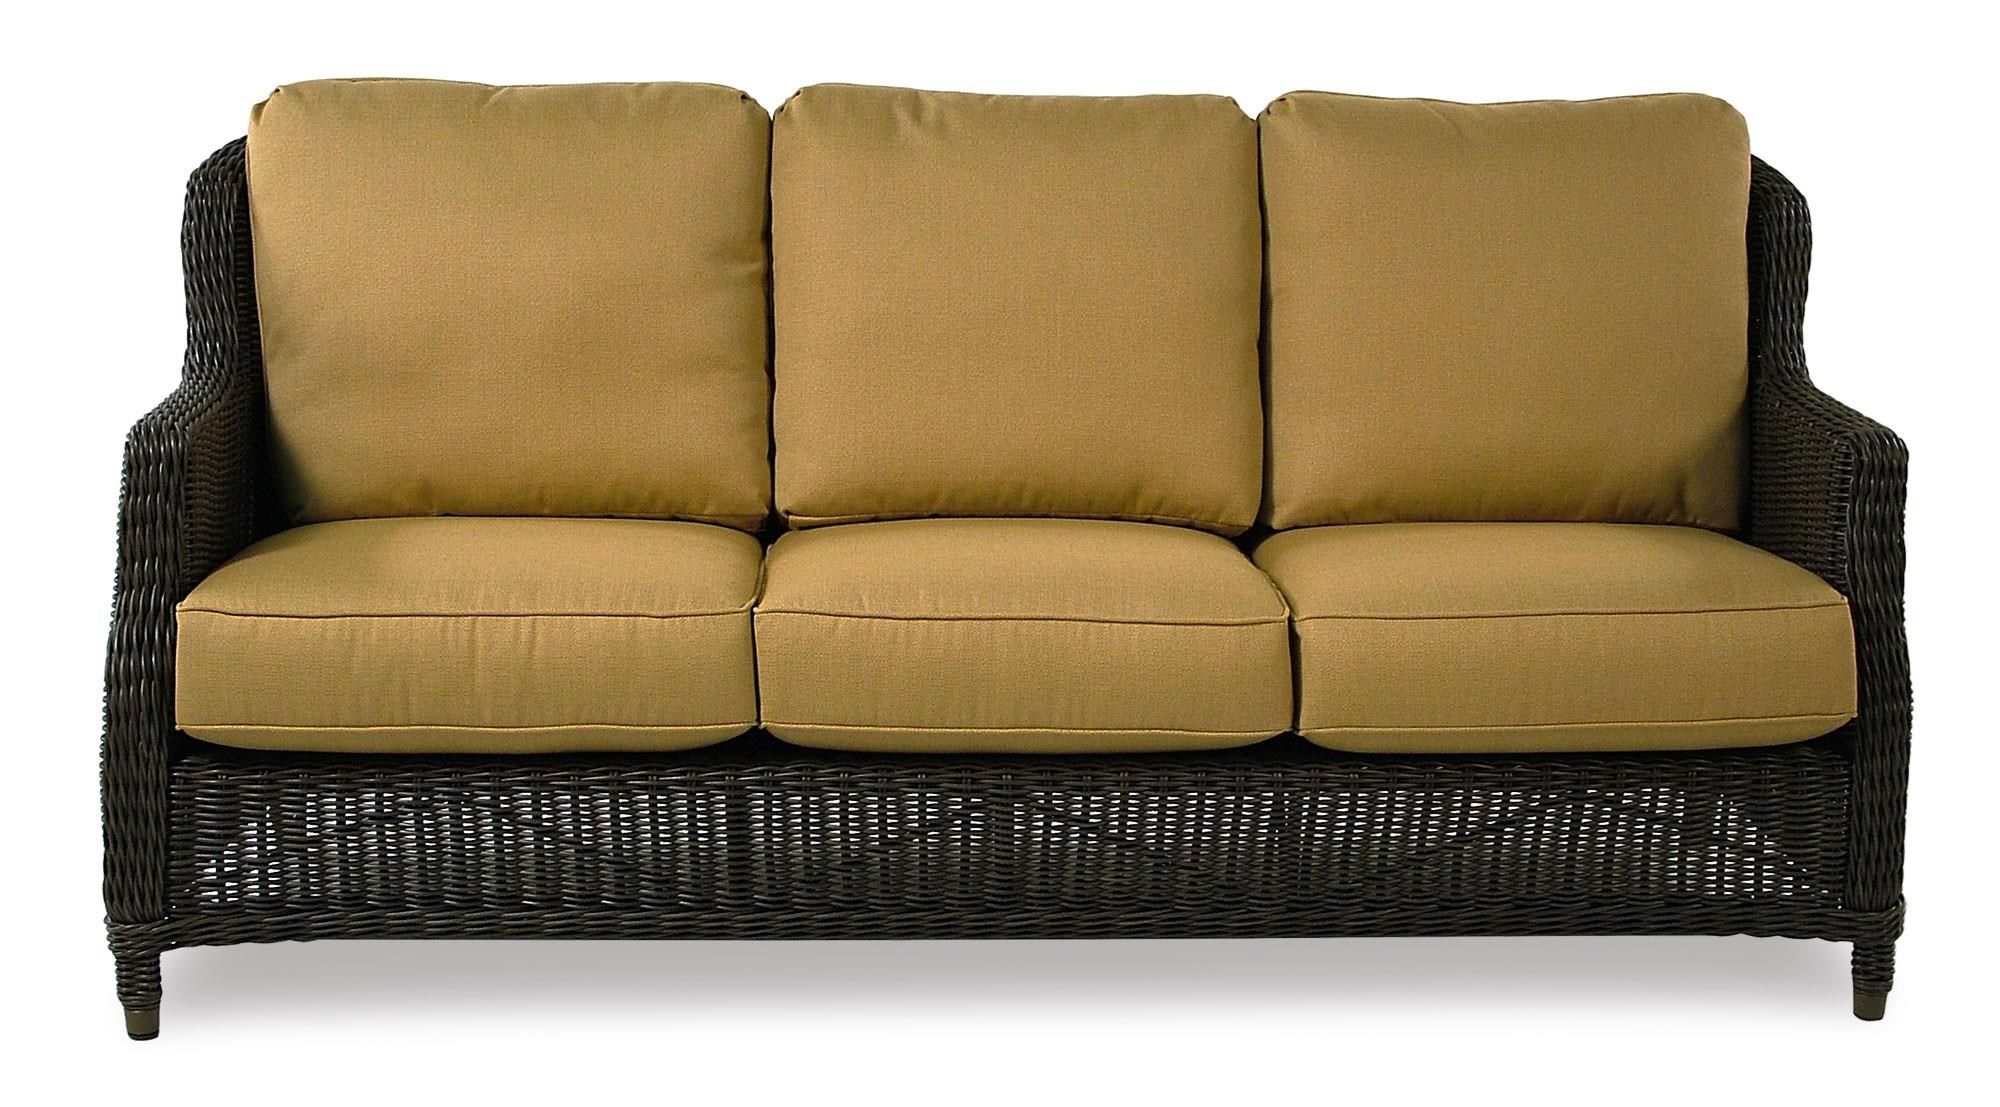 BeachCraft Bayou Outdoor/Patio Sofa - Item Number: S9858-S